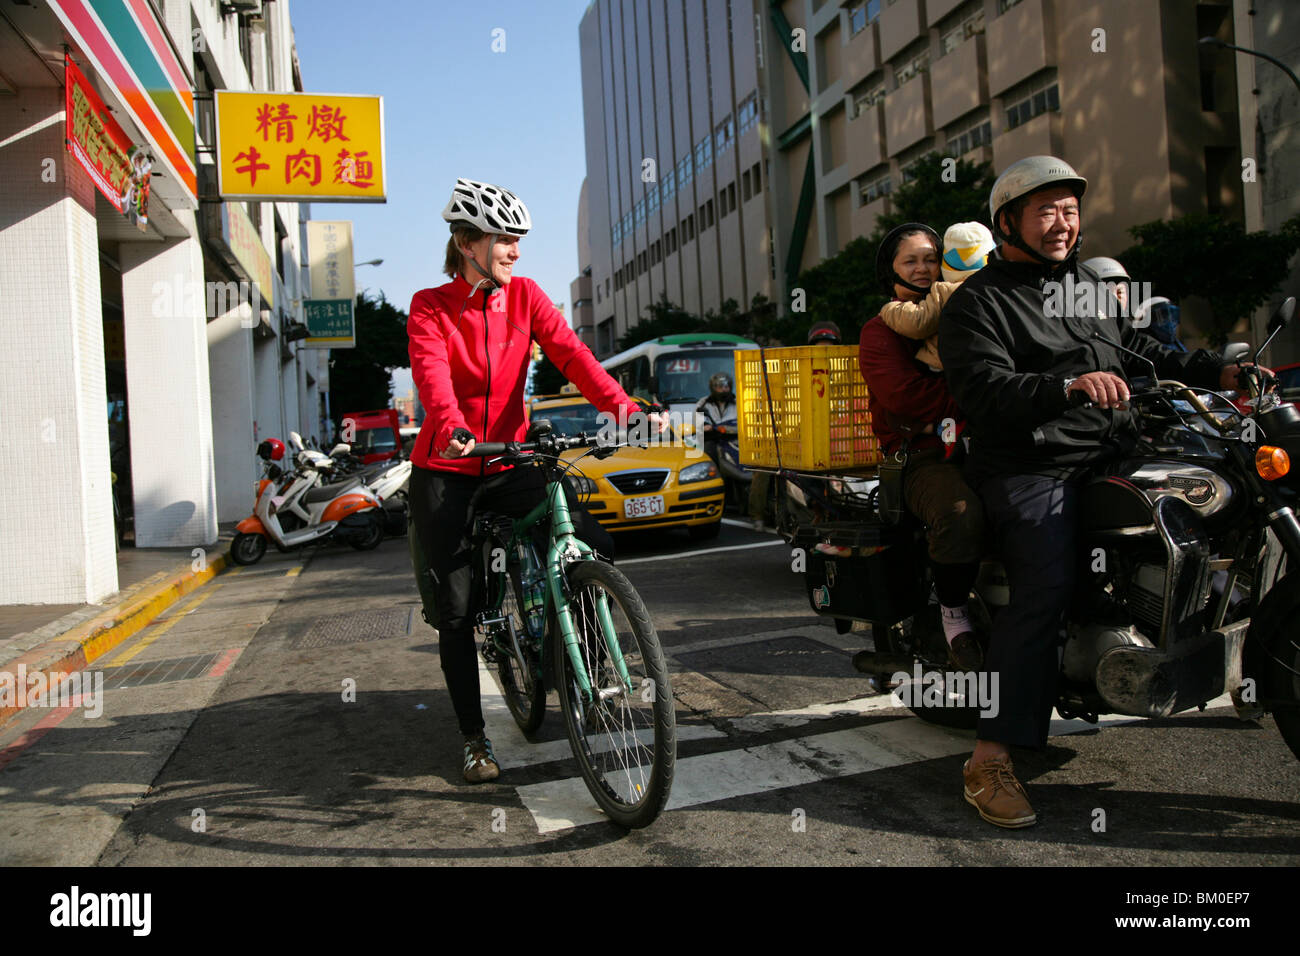 Young German woman on bicycle and family on motorbike, Taipei, Republic of China, Taiwan, Asia Stock Photo